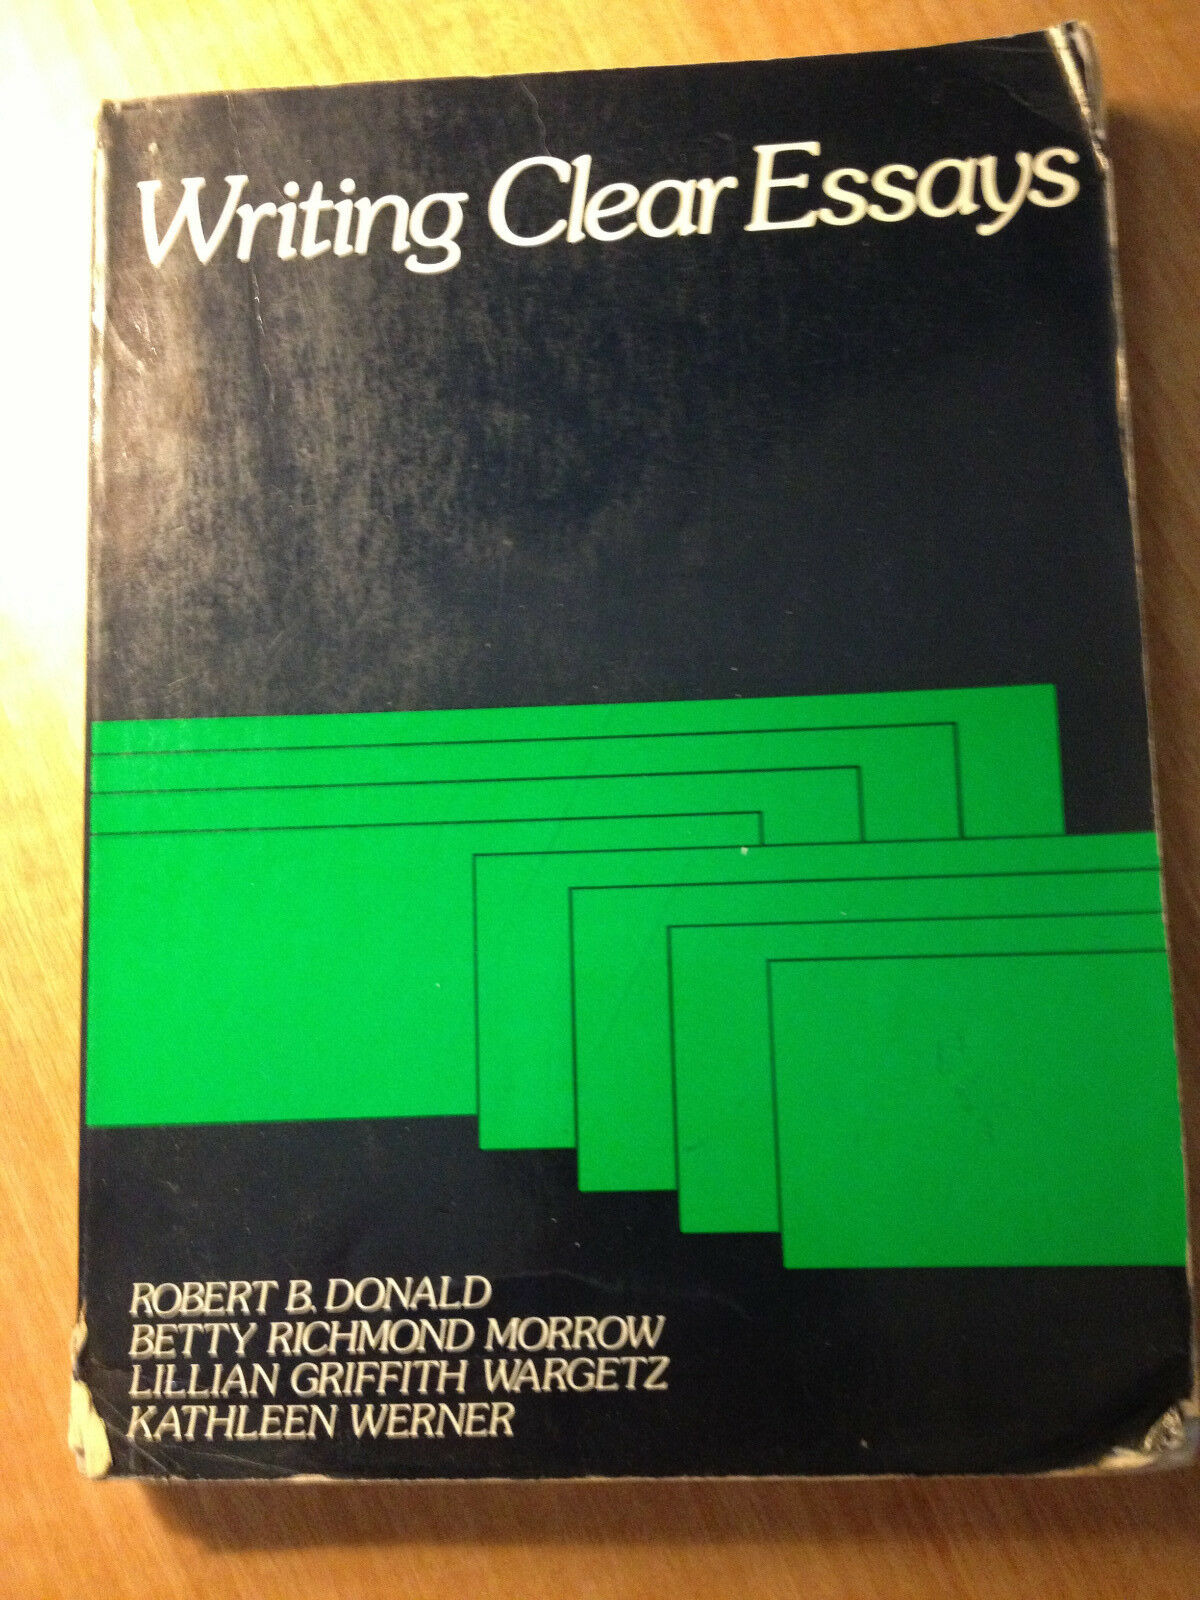 writing clear essays robert donald Writing clear paragraphs by robert b donald starting at $099 writing clear paragraphs has 6 available editions to buy at alibris.